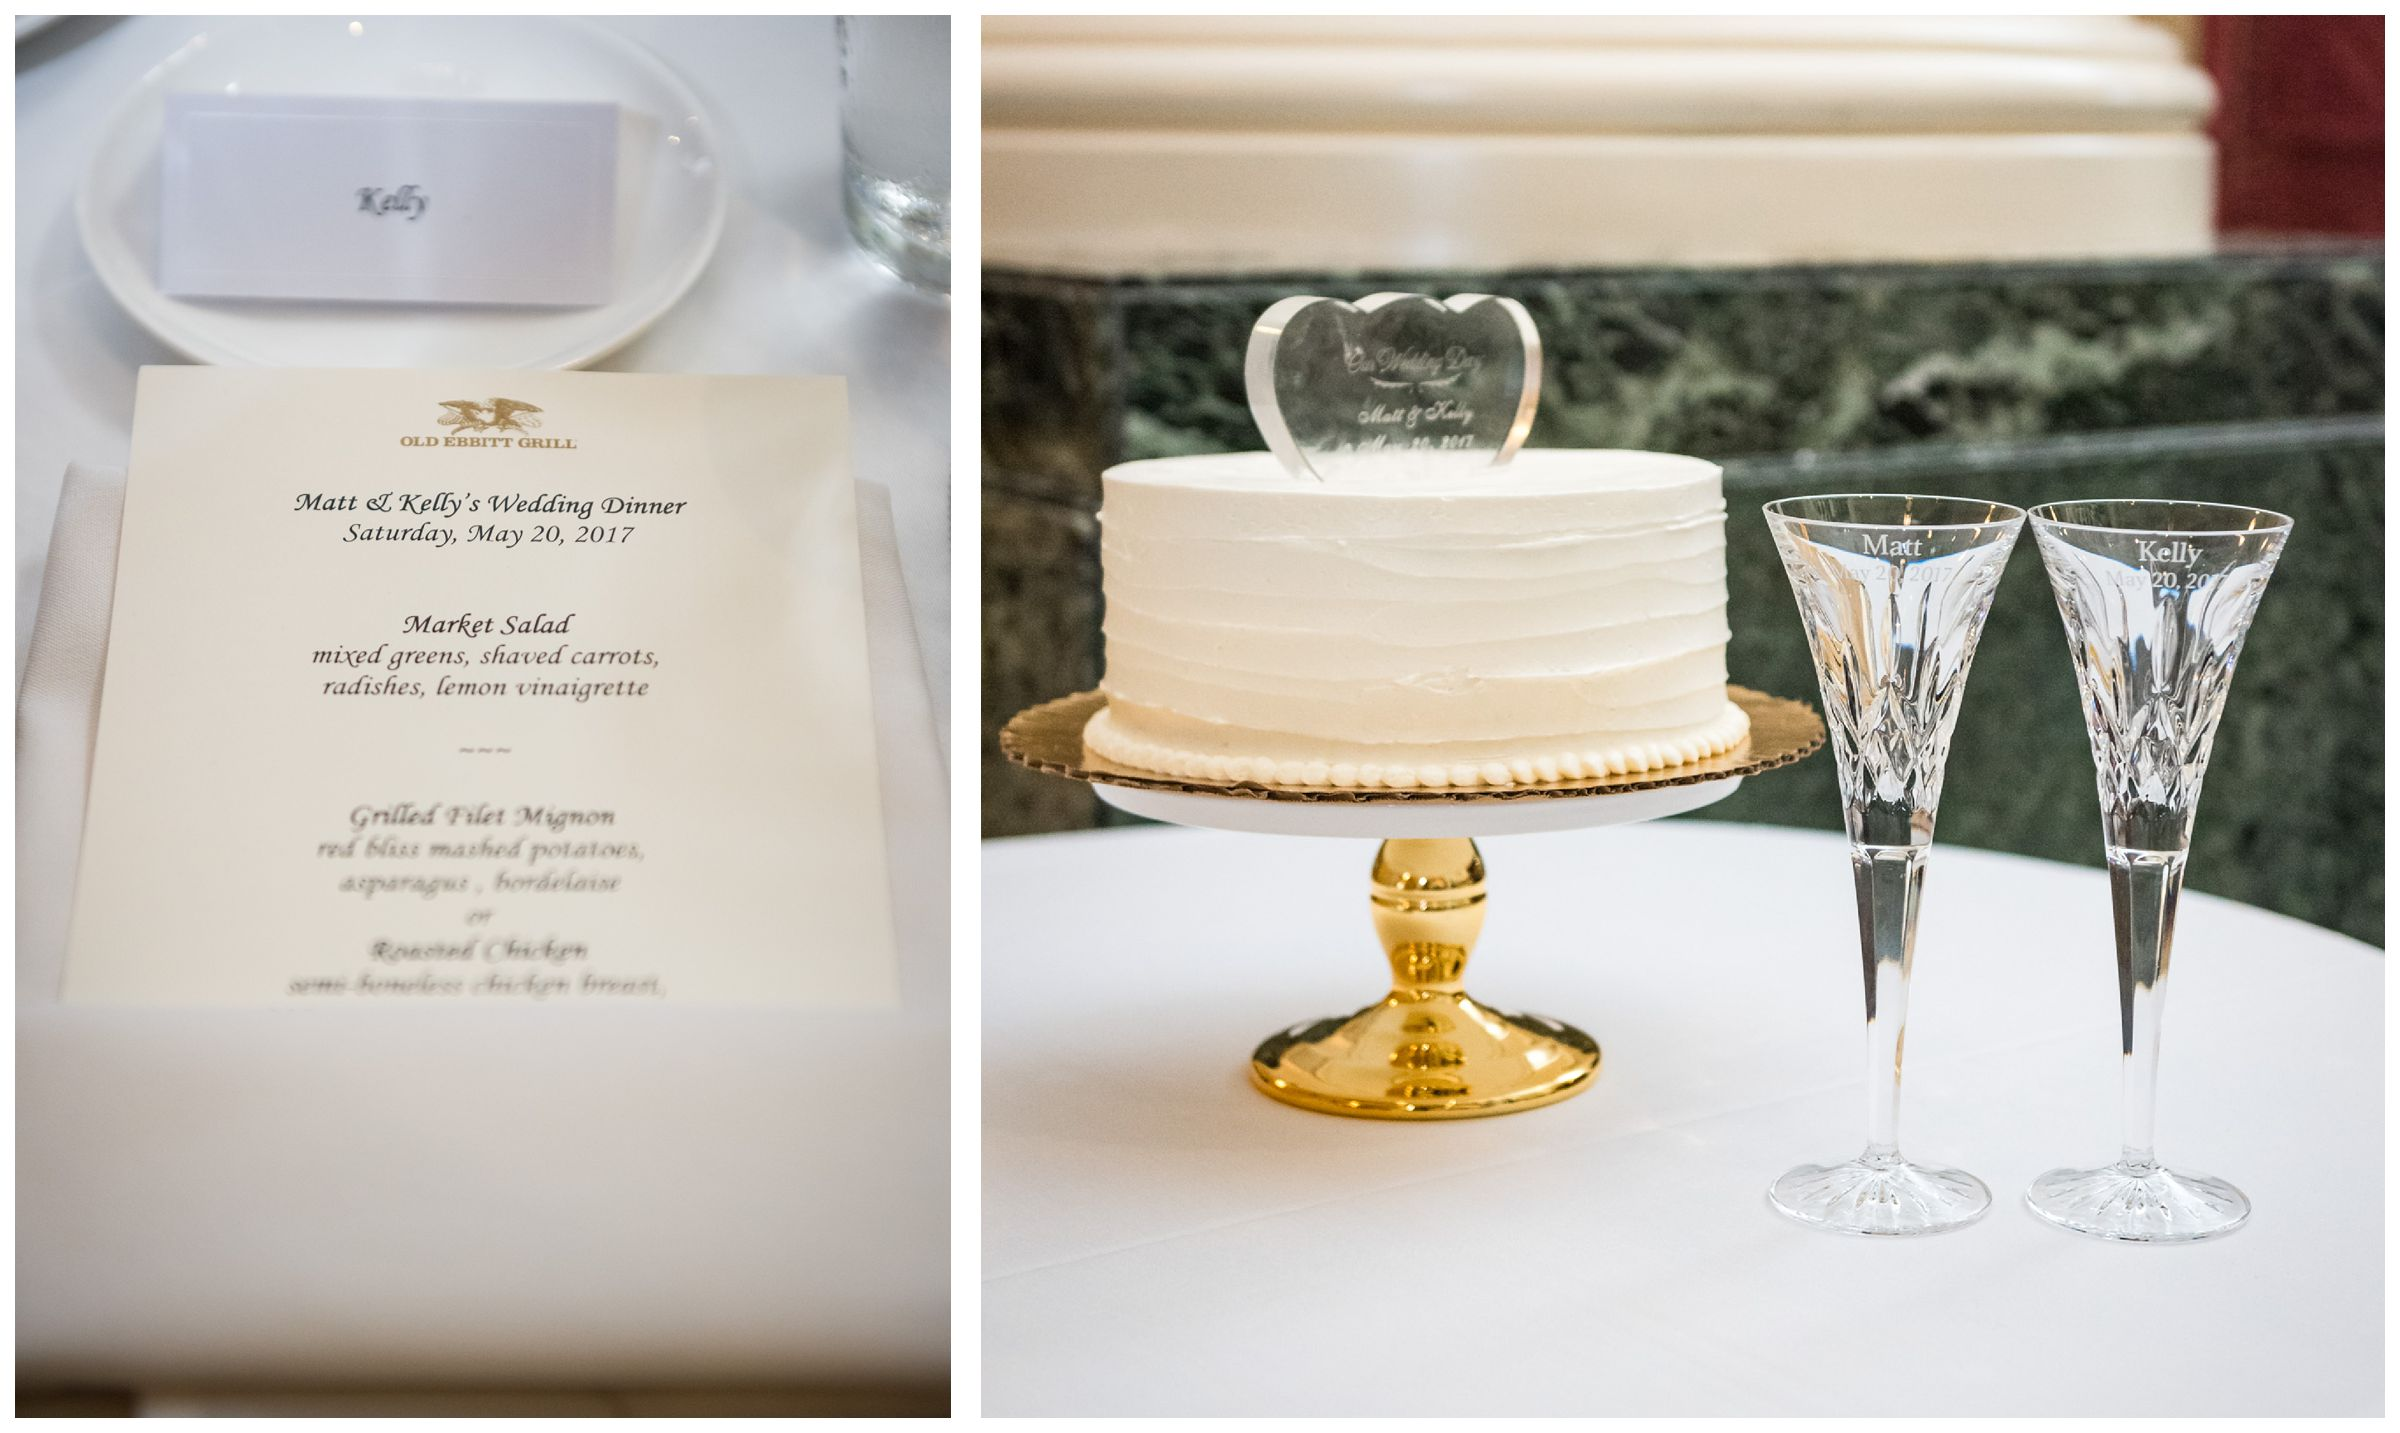 menu, cake with glass topper, and personalized champagne flutes during wedding reception dinner at Old Ebbitt Grill in Washington, D.C.